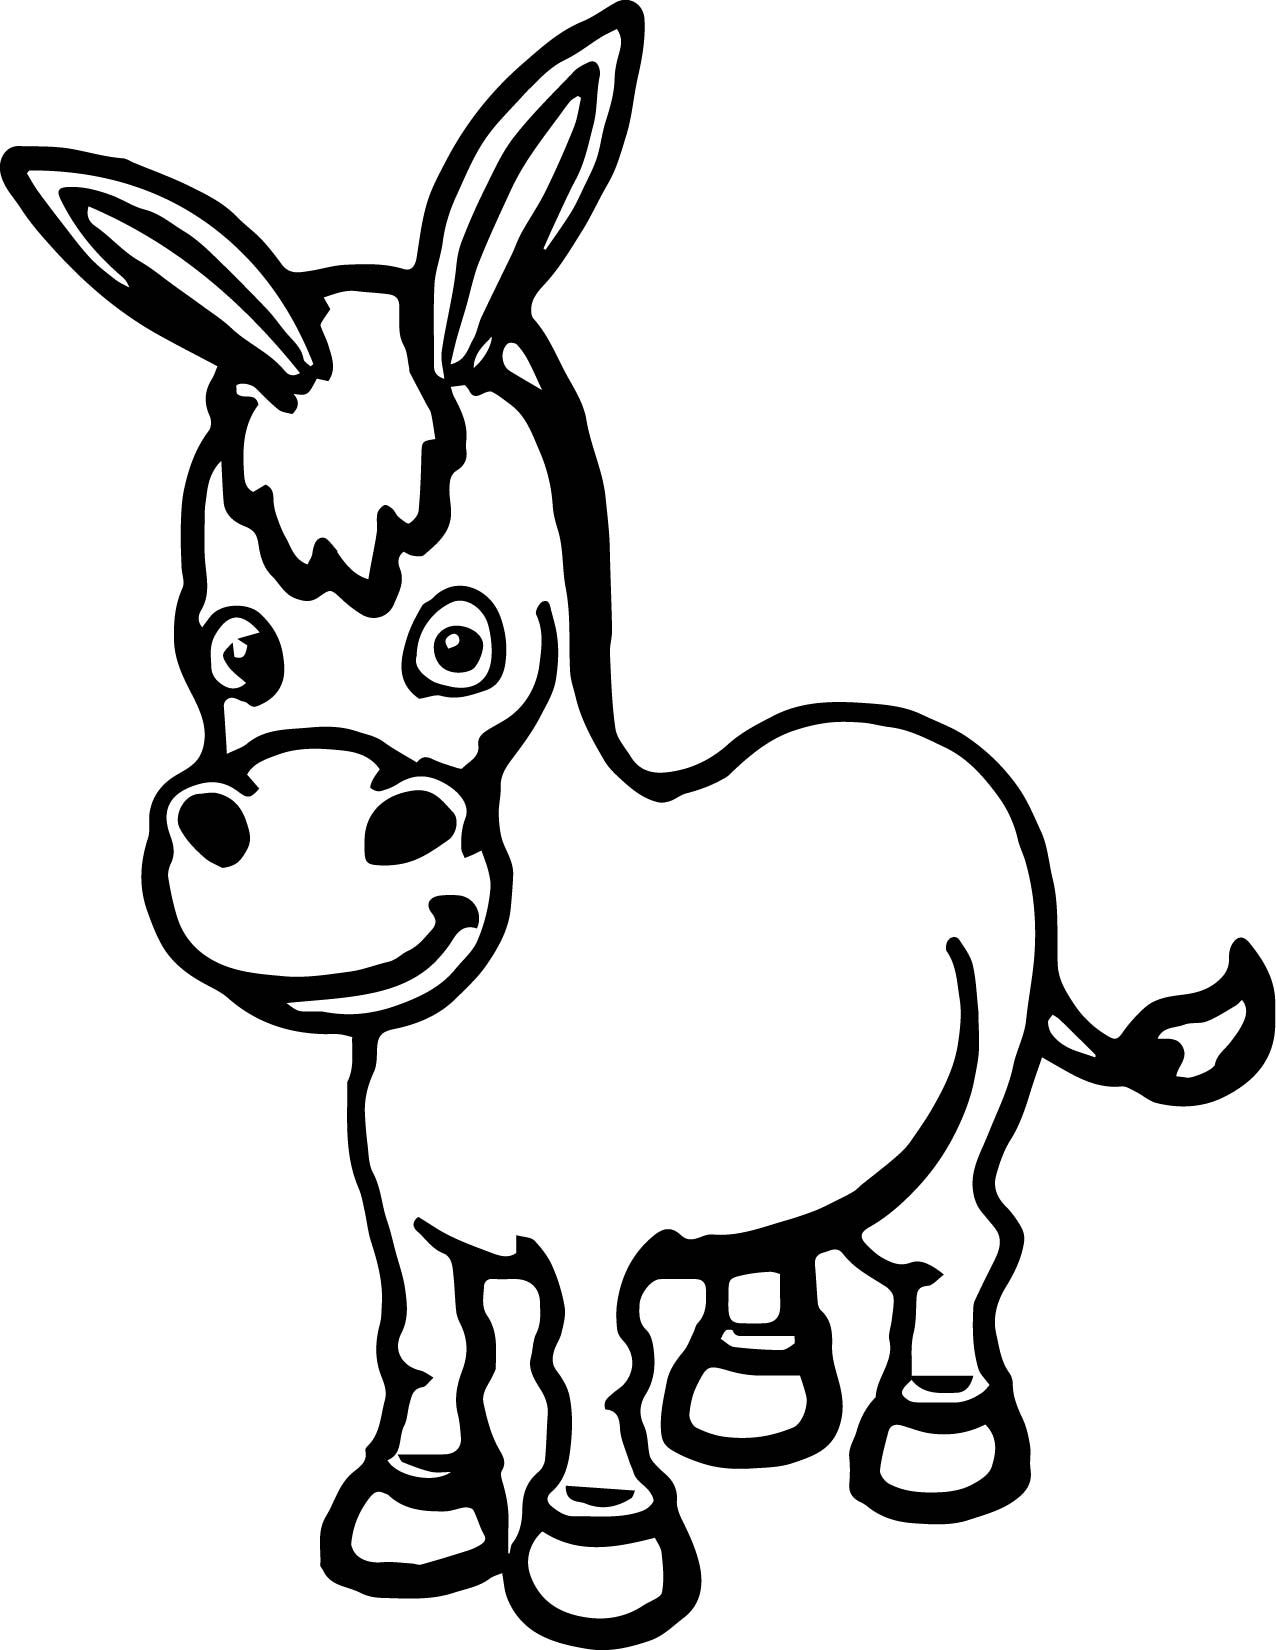 donkey pictures to print cute donkey coloring page free printable coloring pages donkey pictures to print